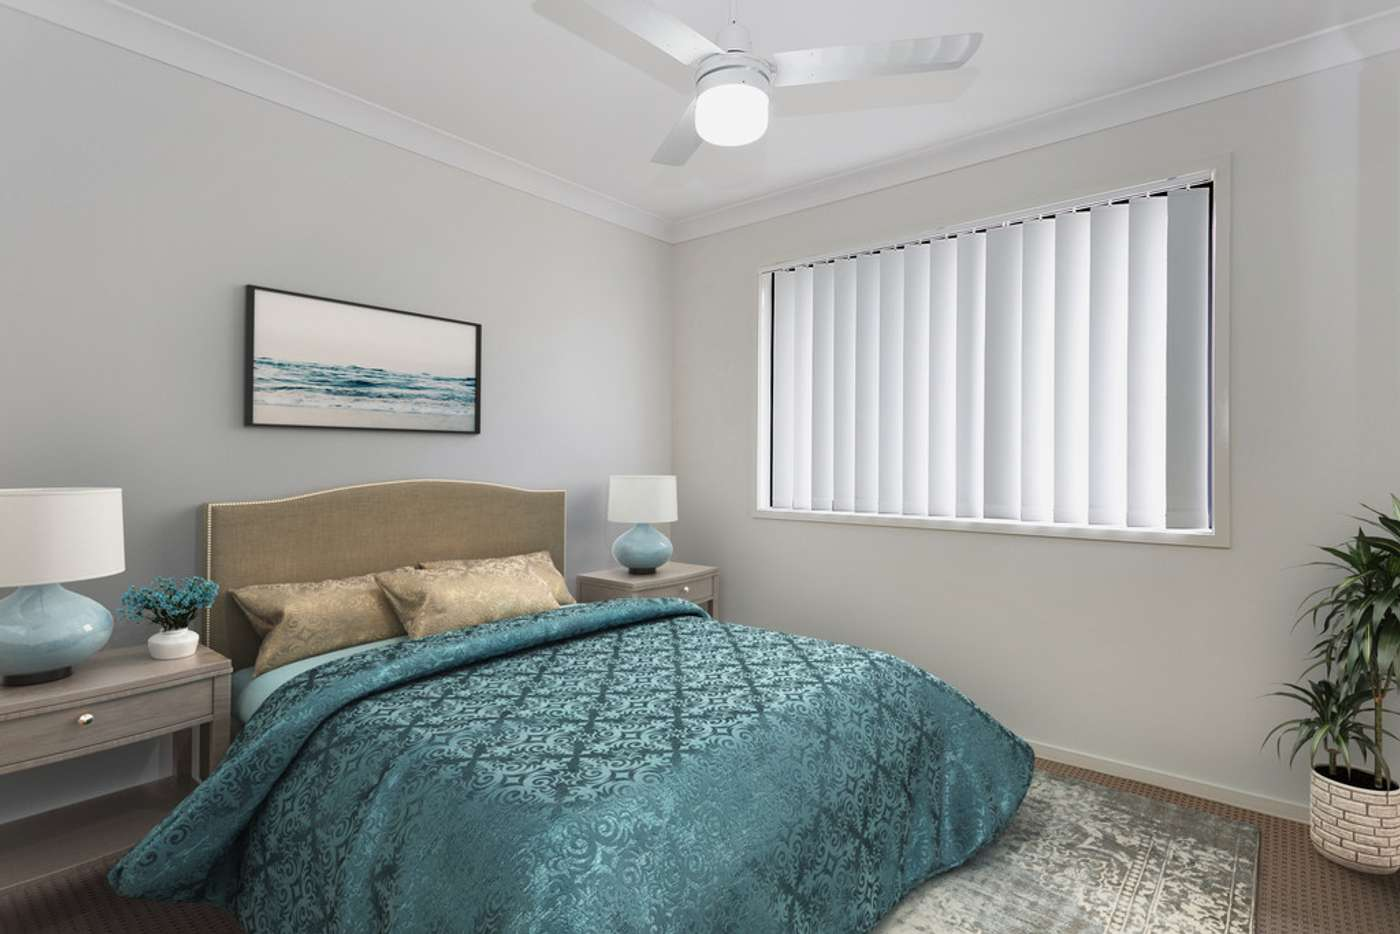 Seventh view of Homely house listing, 63 Caroval Drive, Rural View QLD 4740